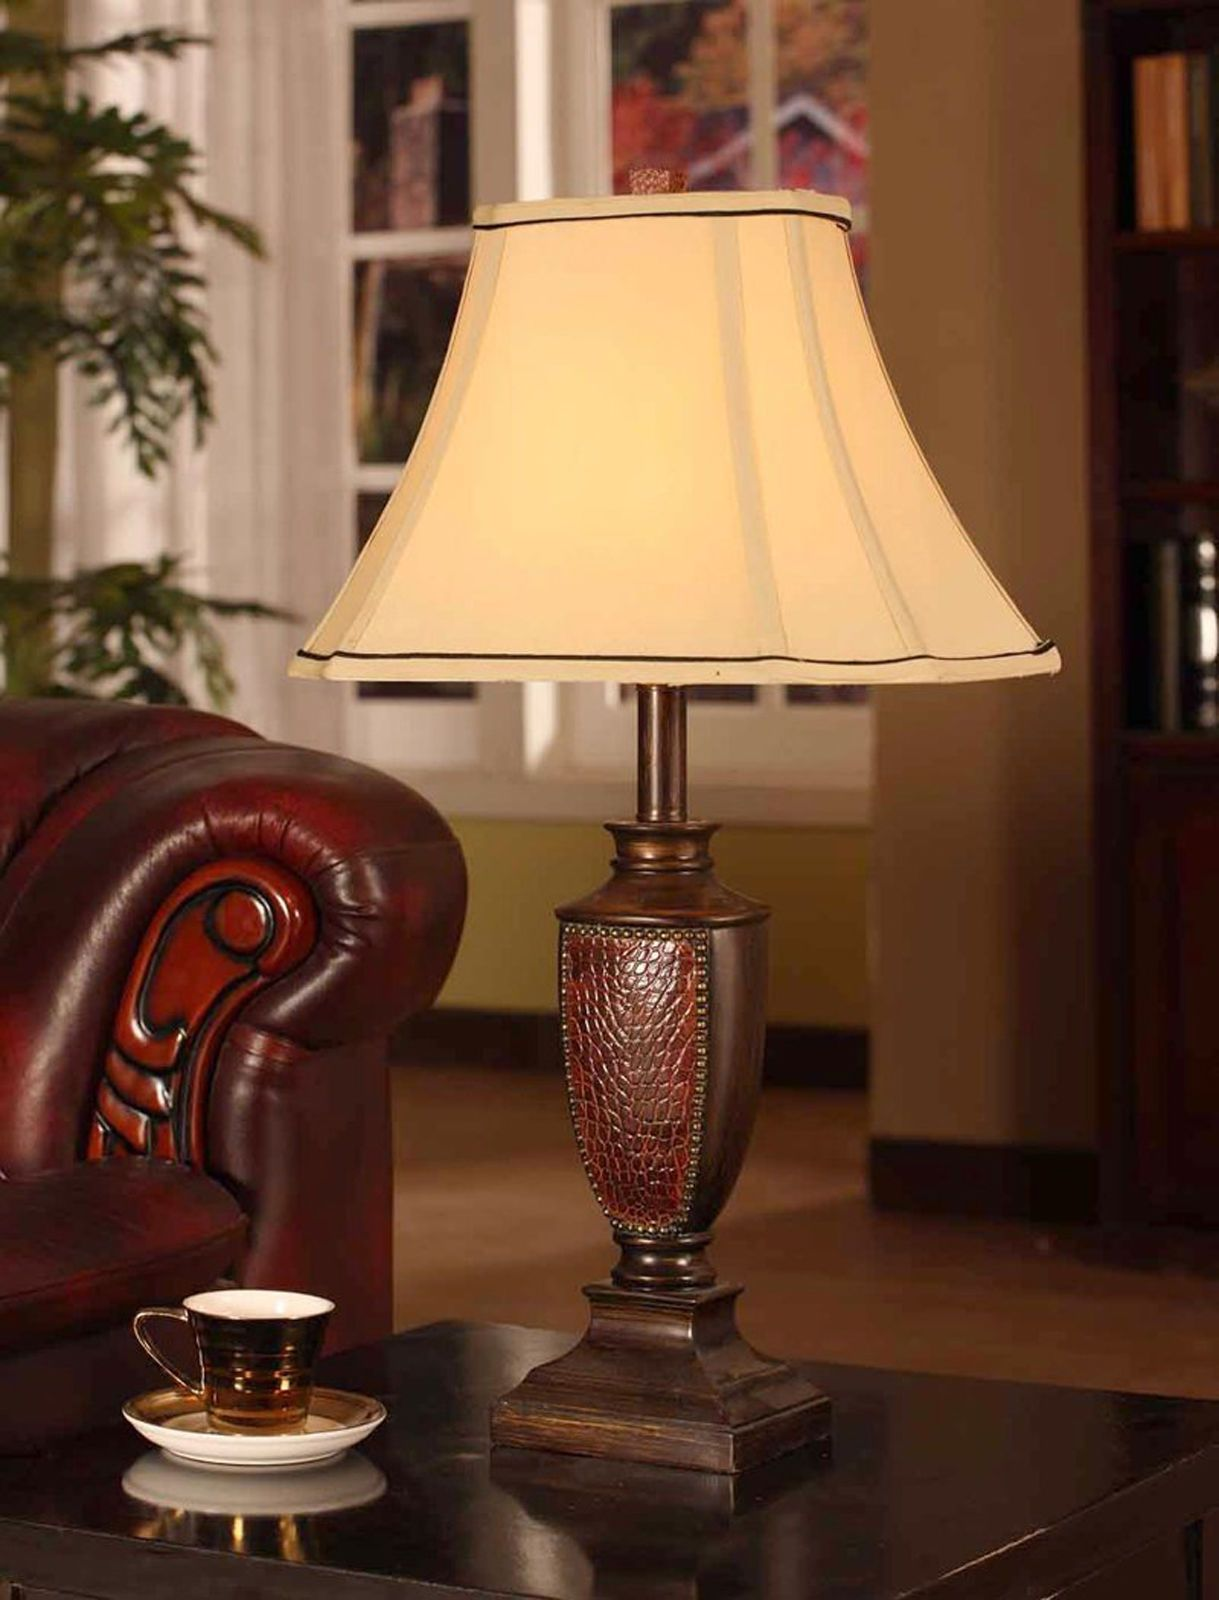 Lamp Table Lamps For Bedroom Living Room Kids Guitar Desk Lamp Beauteous Lamps For Living Room Review